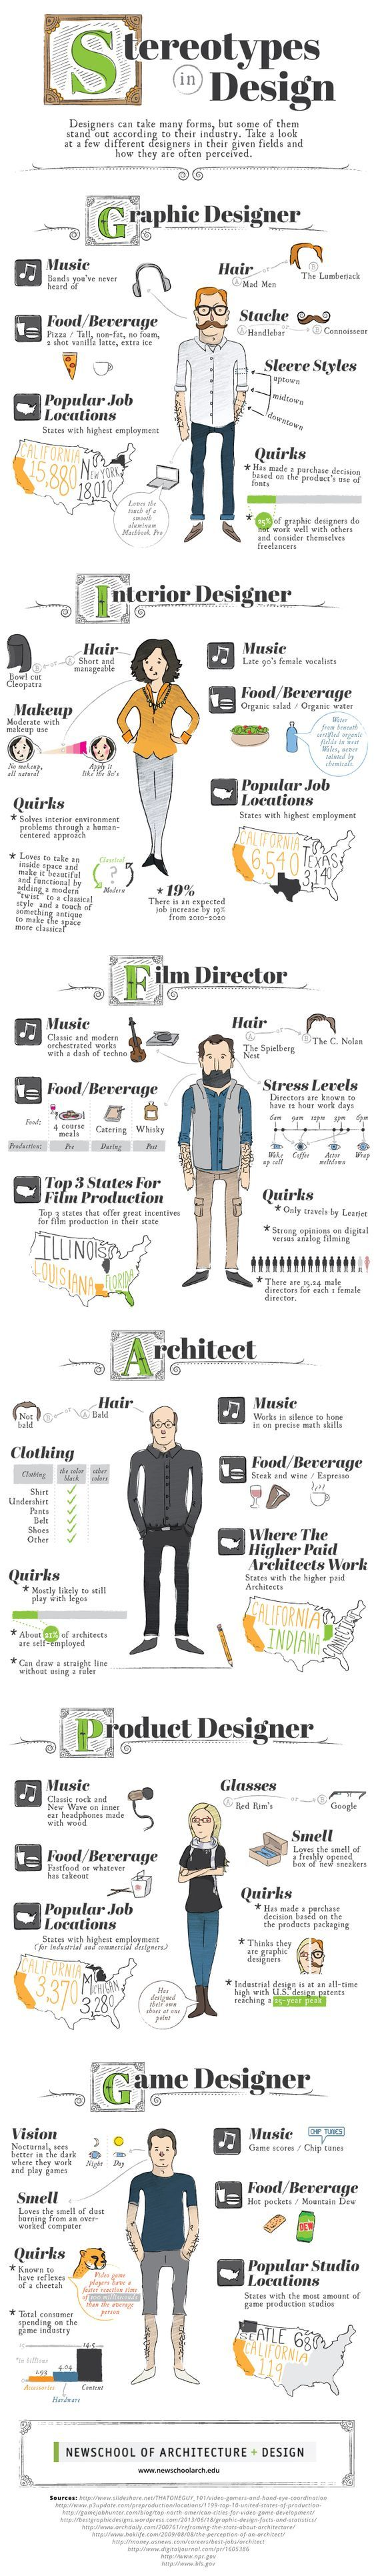 Popular designer stereotypes unveiled in this cheeky graphic popular designer stereotypes unveiled in this cheeky graphic do you recognise yourself or your colleagues solutioingenieria Choice Image